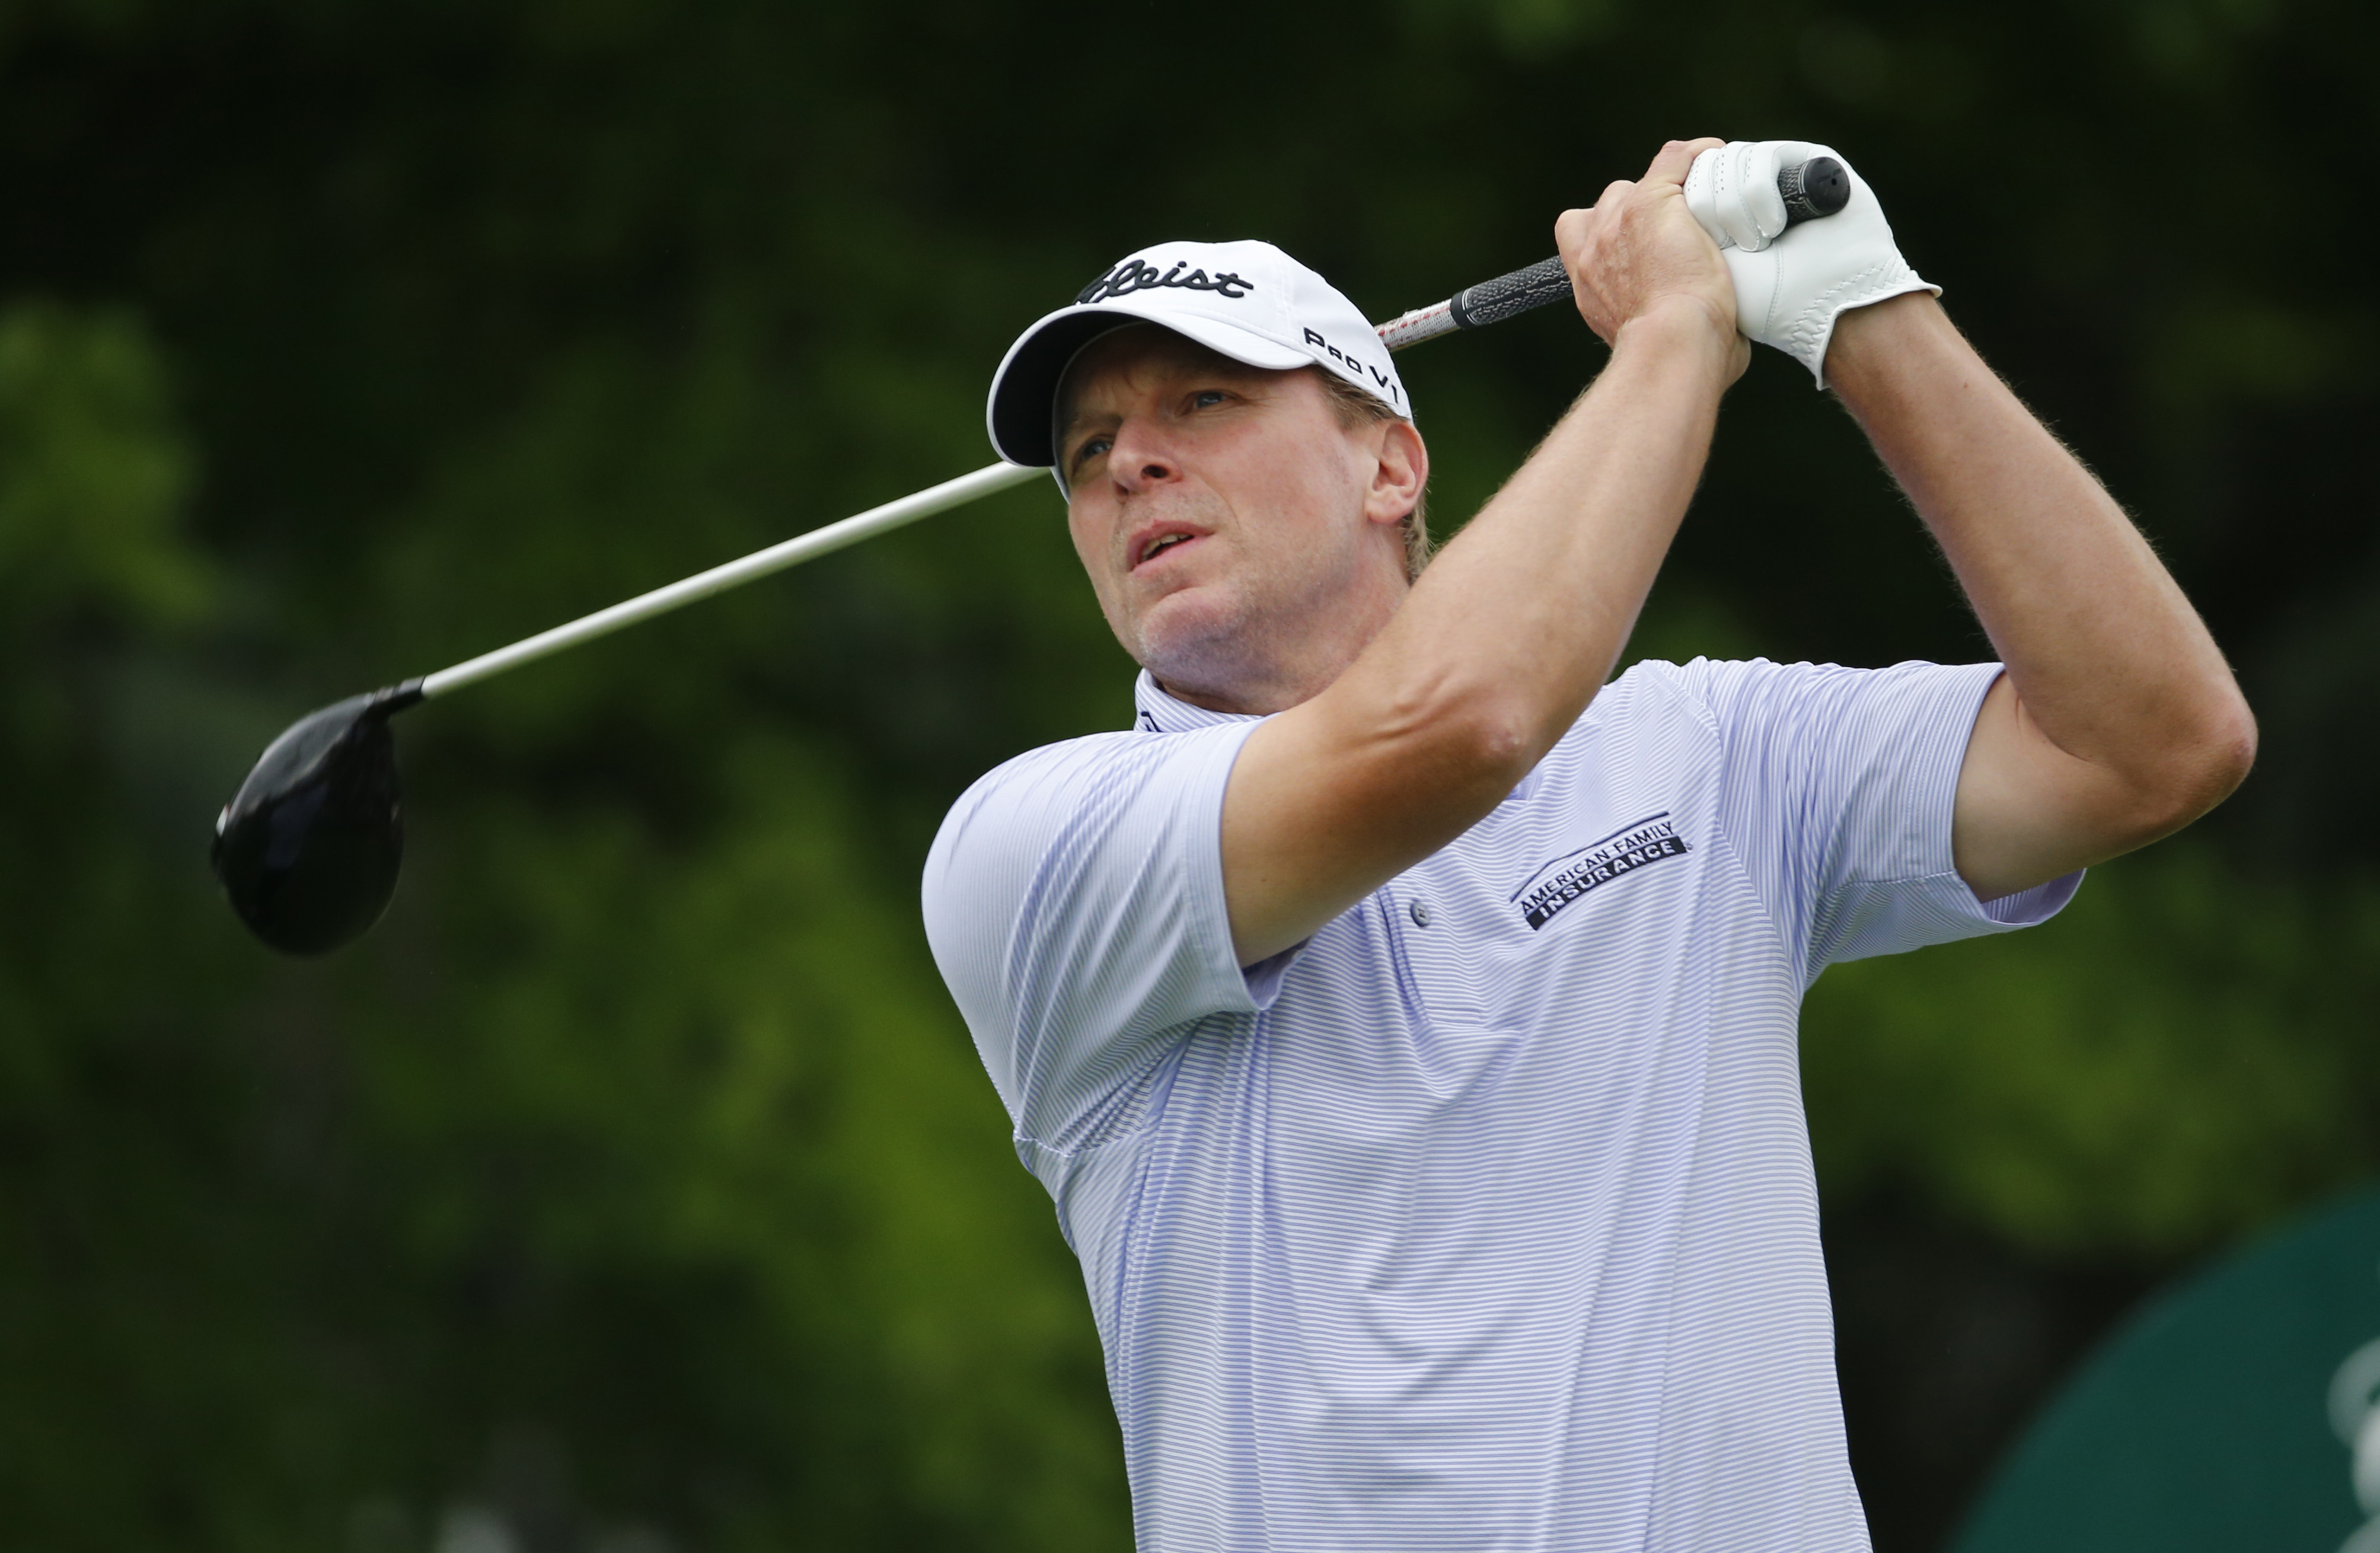 FILE - In this July 2, 2015 file photo, Steve Stricker watches his tee shot on the 12 hole during the first round of the Greenbrier Classic golf tournament at the Greenbrier Resort in White Sulphur Springs, W.Va.  Approaching the twilight of his career, t